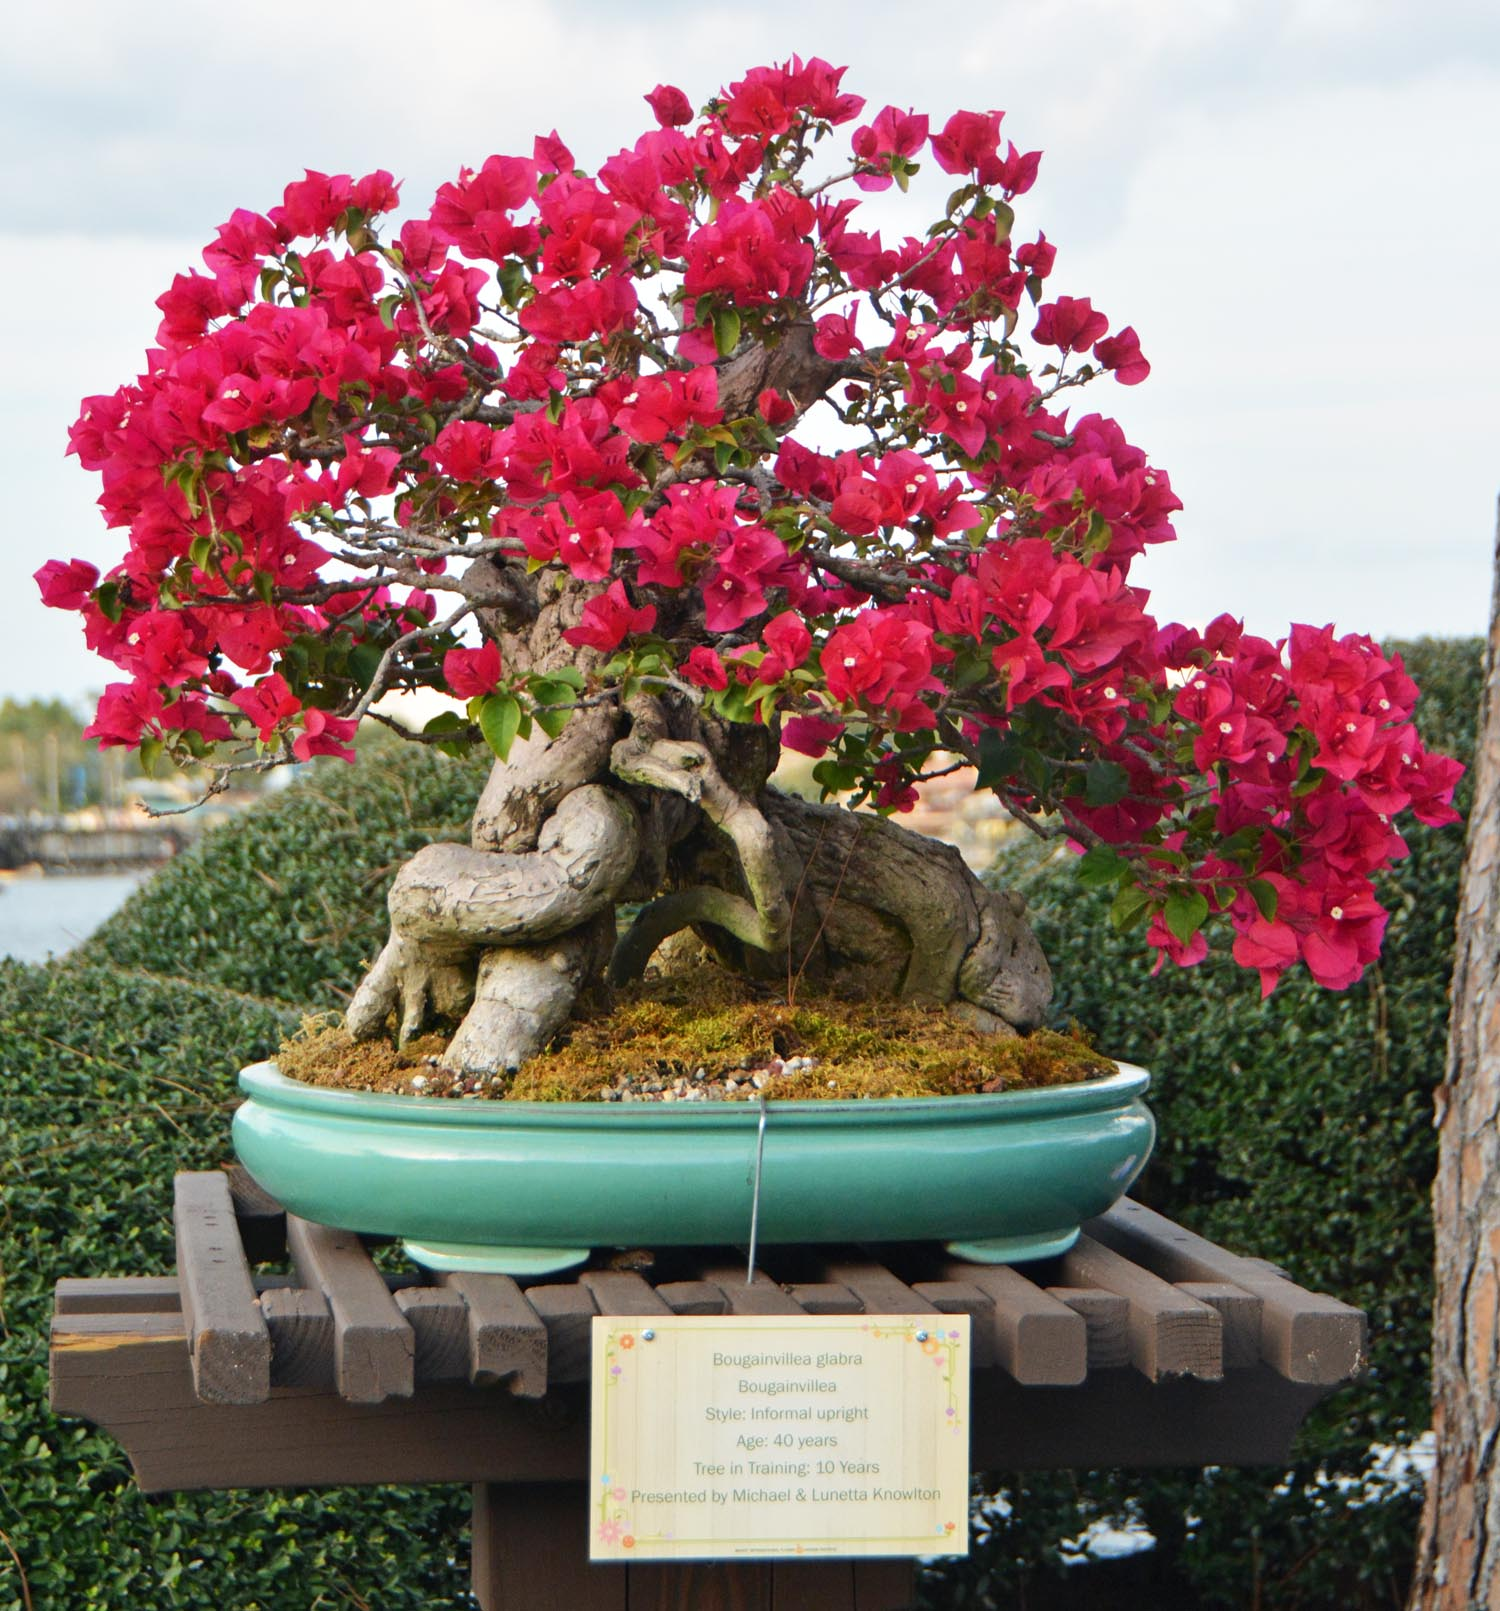 Today S Disney Photo Bonsai On Display At Flower Garden A Gator In Naples